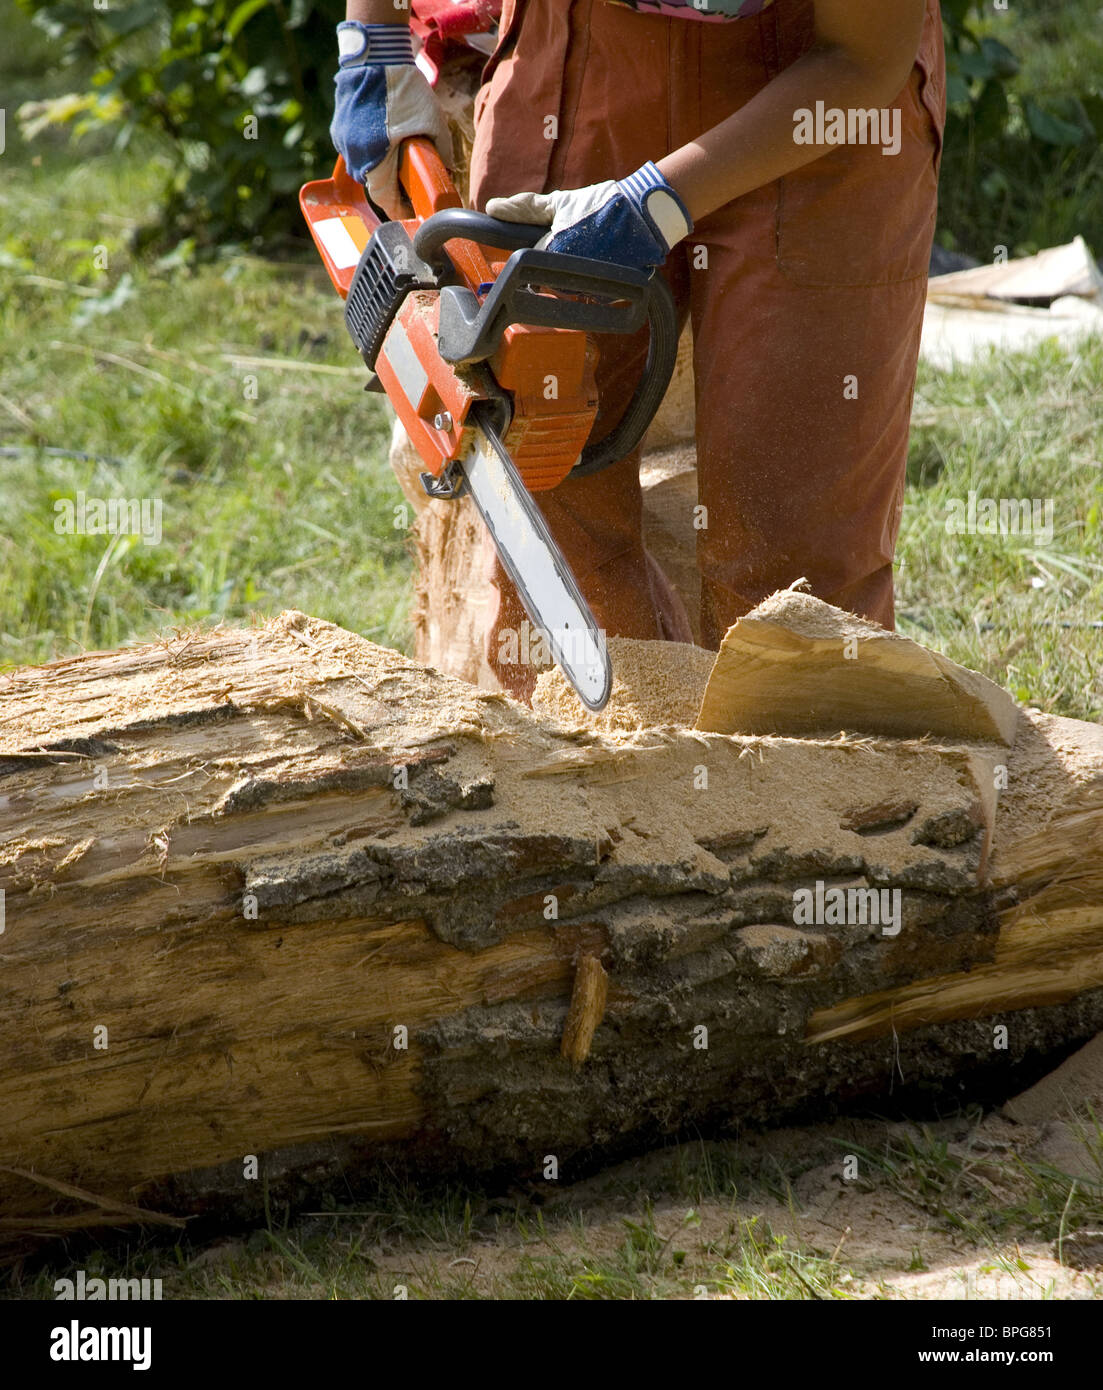 Worker using chain saw to cut out wood sculpture - Stock Image